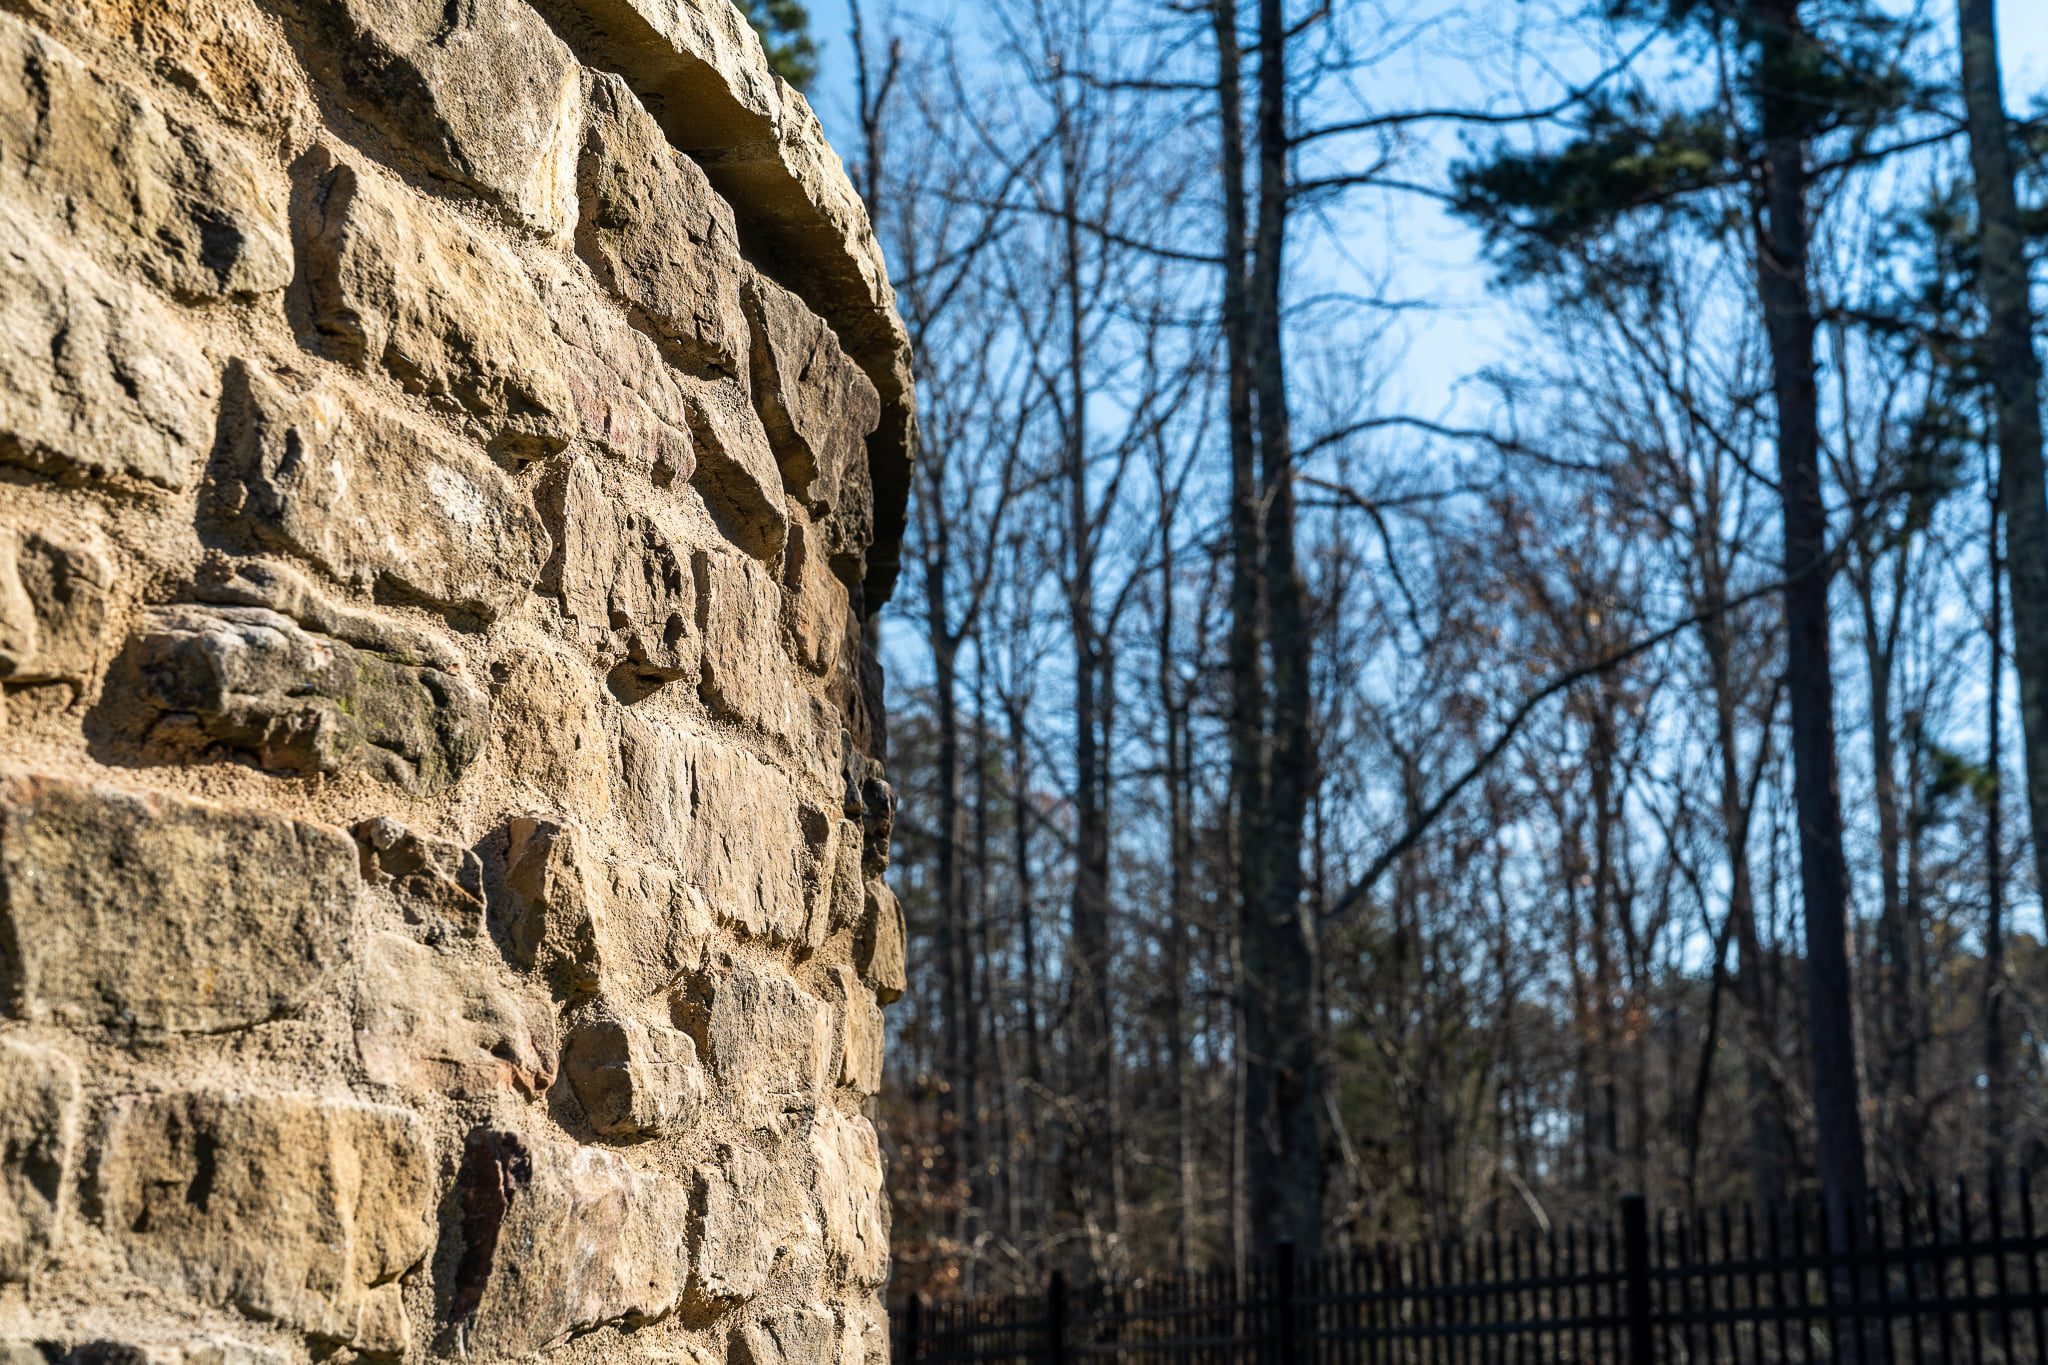 Close up of natural stone retaining wall